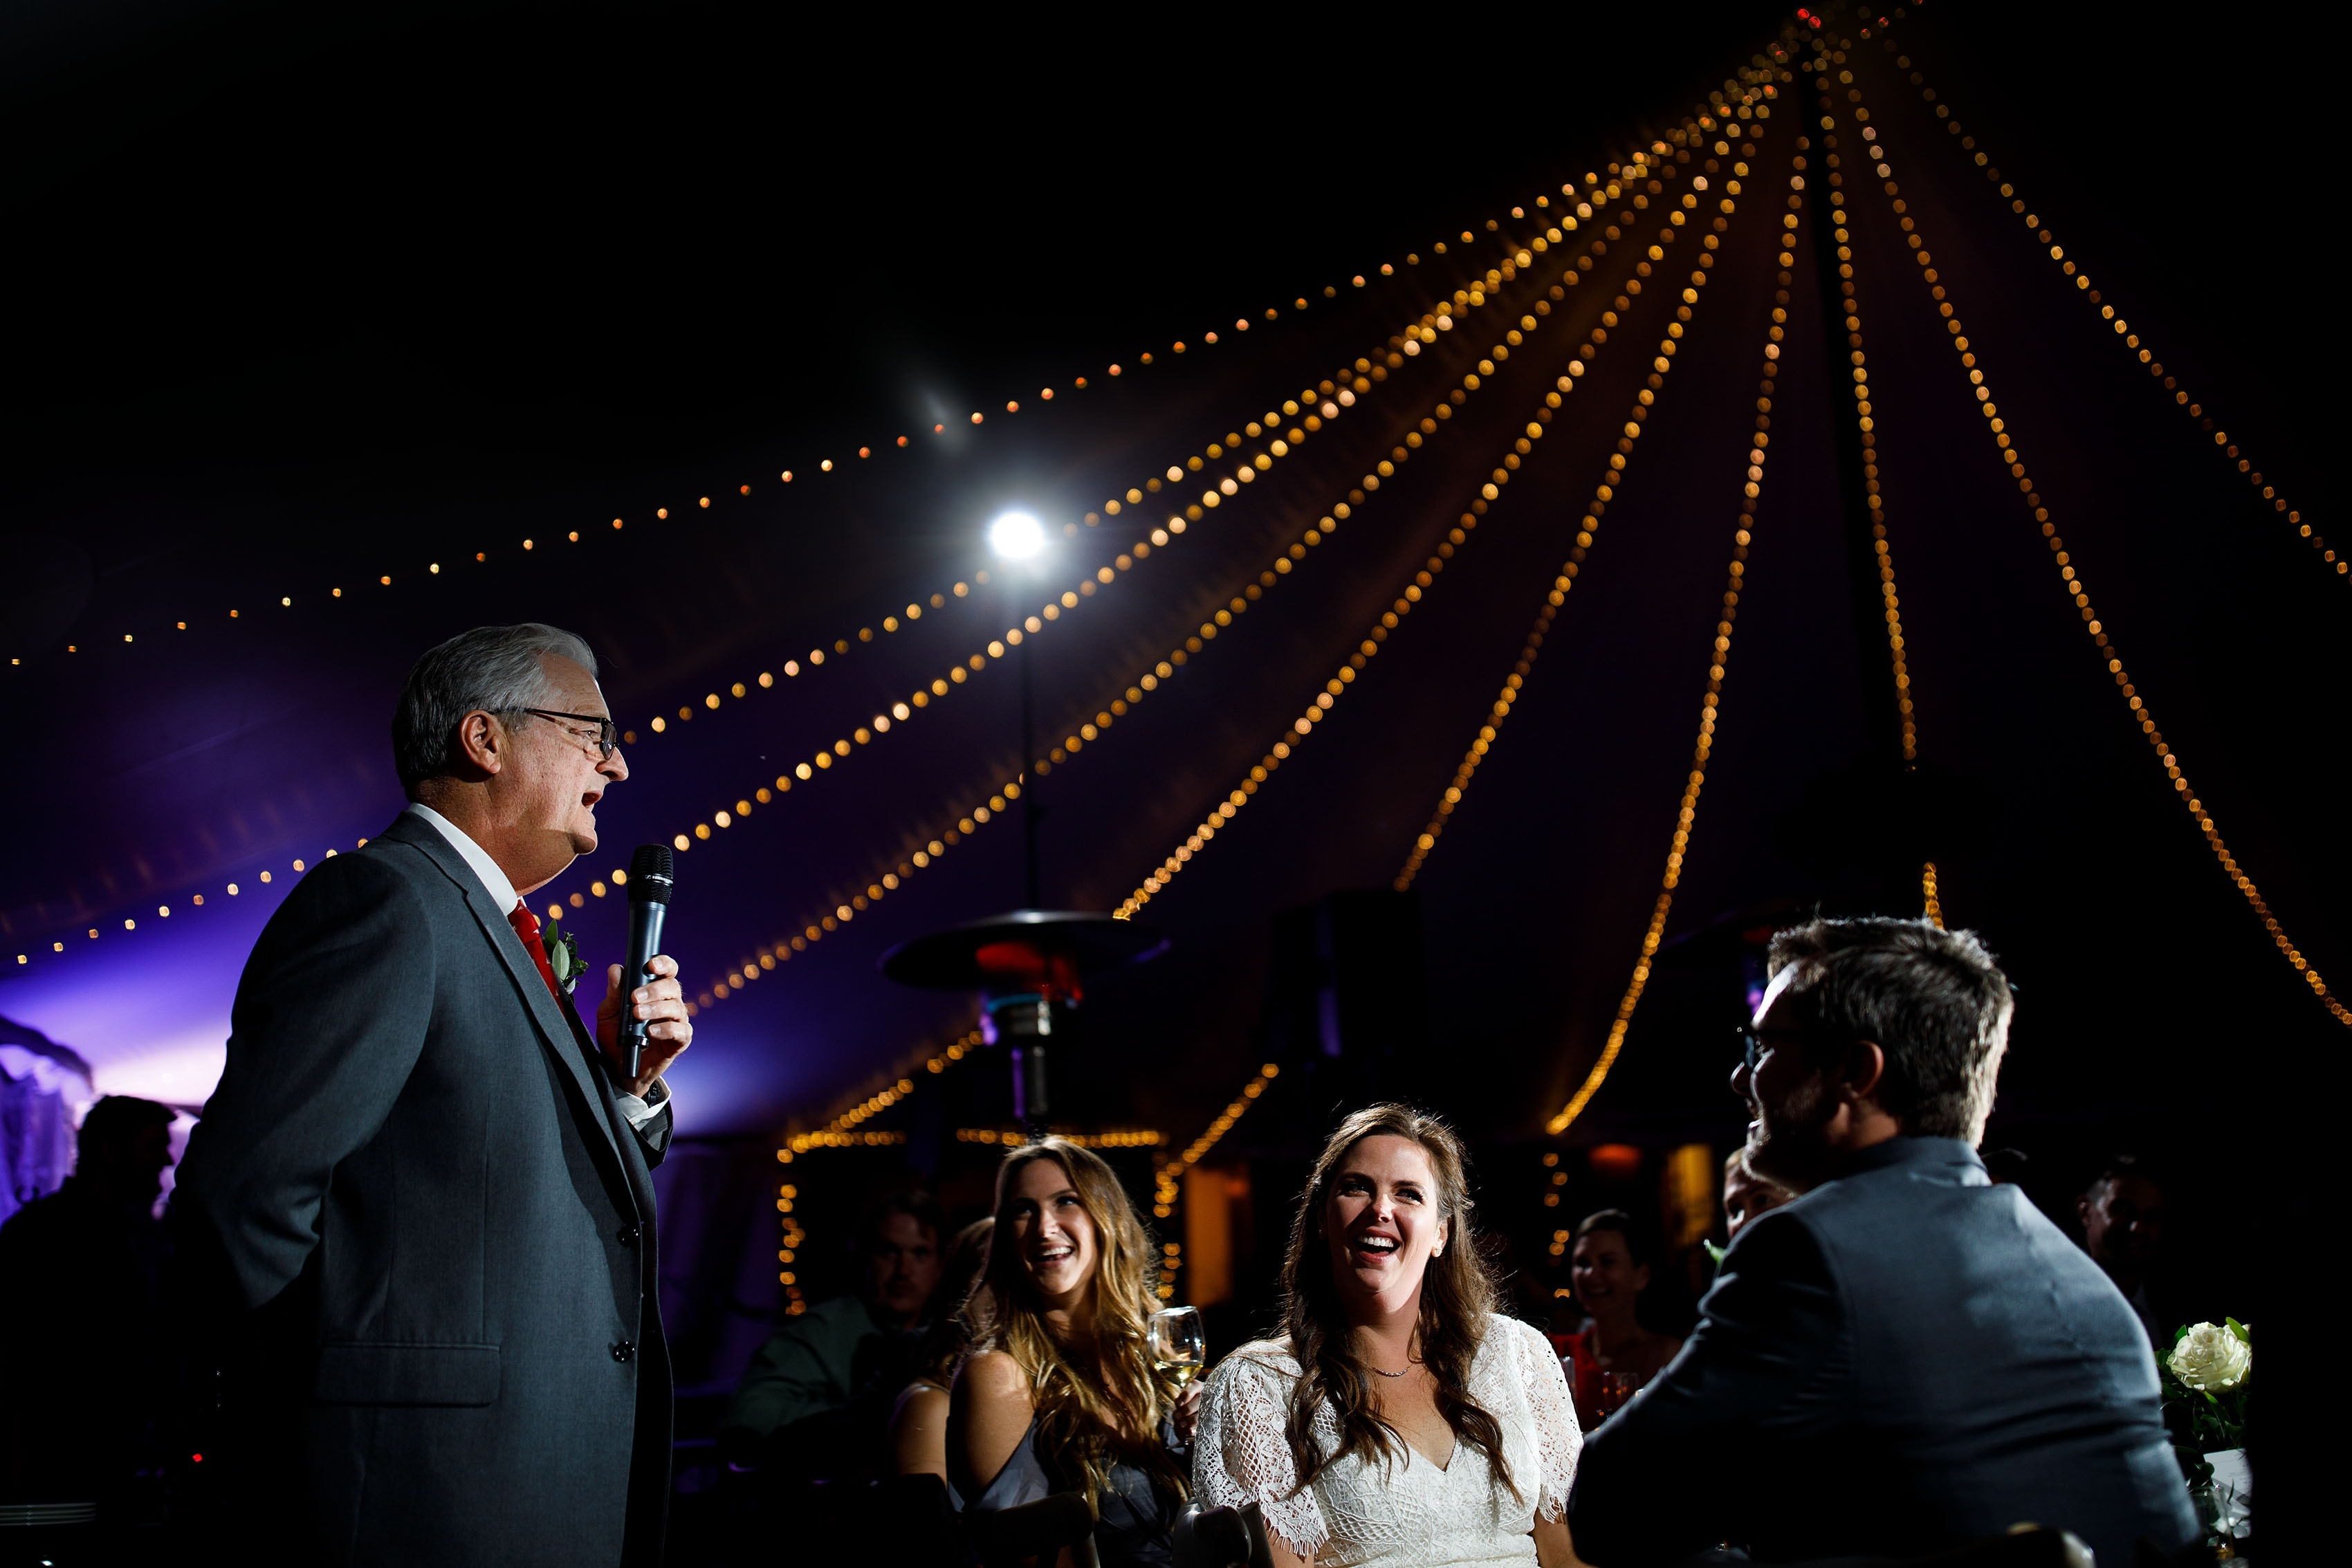 The father of the bride gives a toast under the tent during the Blackstone Rivers Ranch wedding reception in Idaho Springs